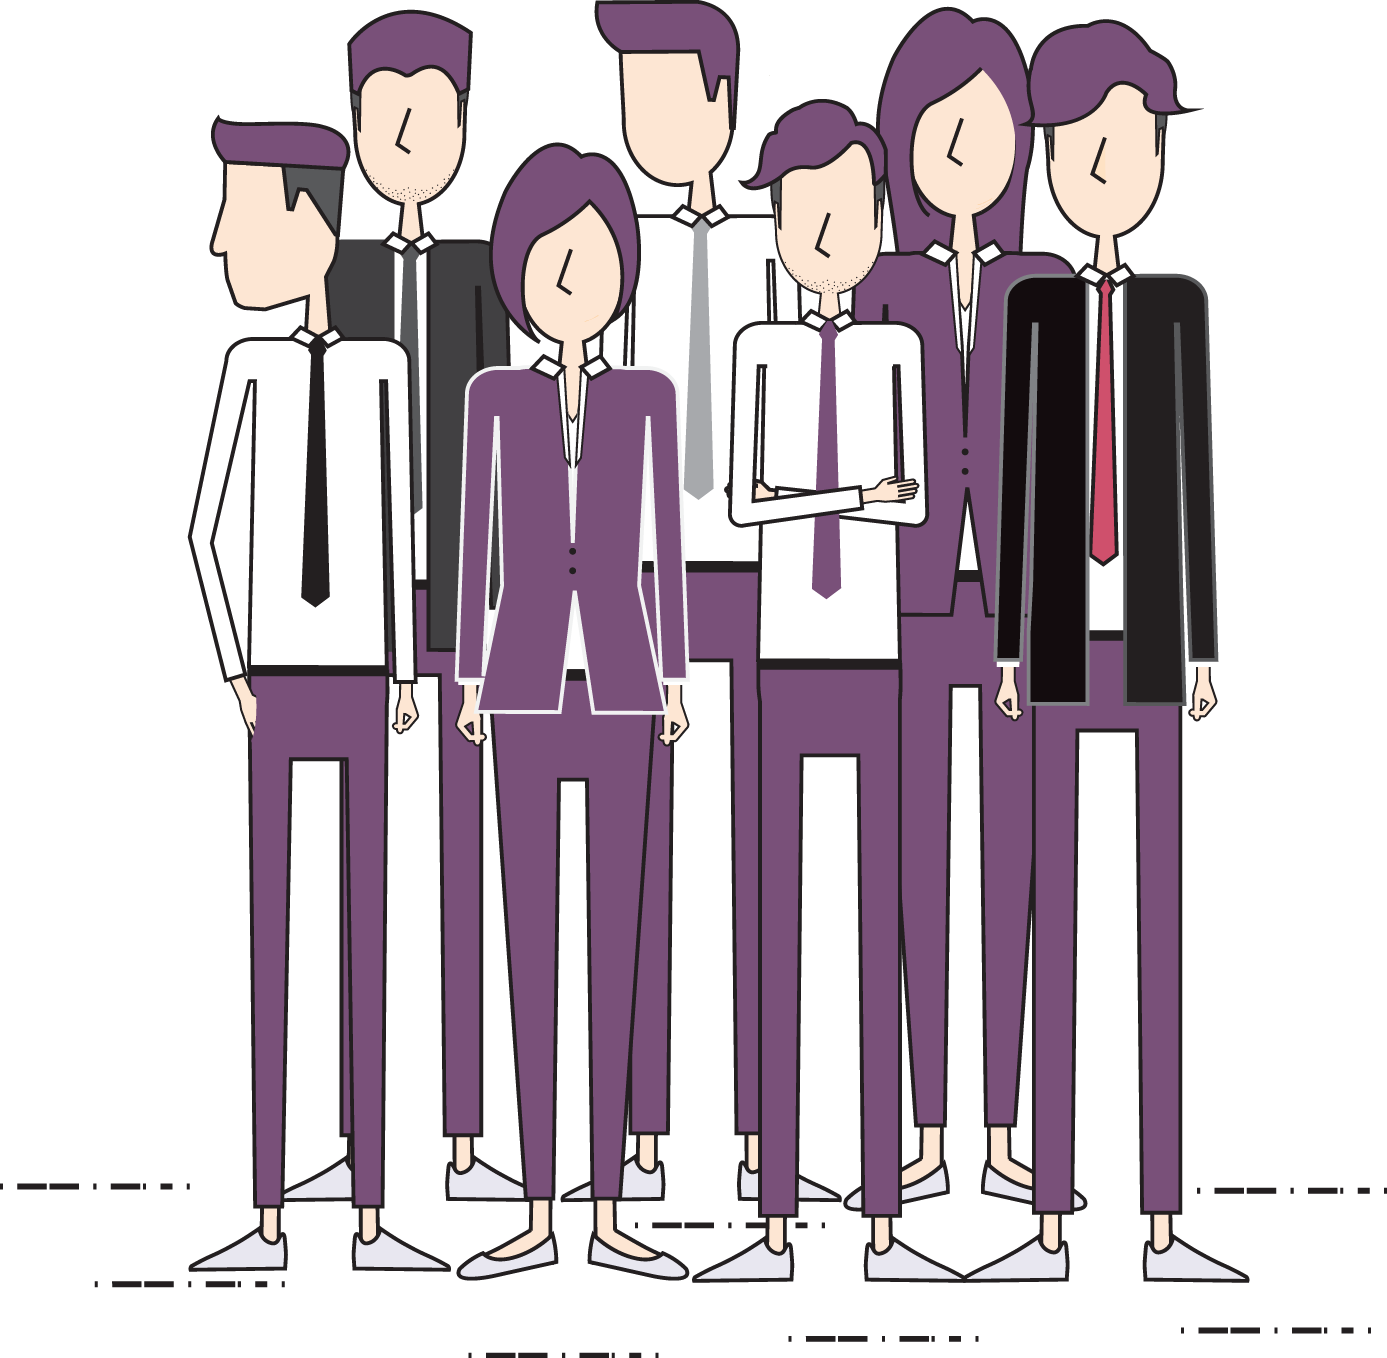 Image of 7 People in Purple Outfits